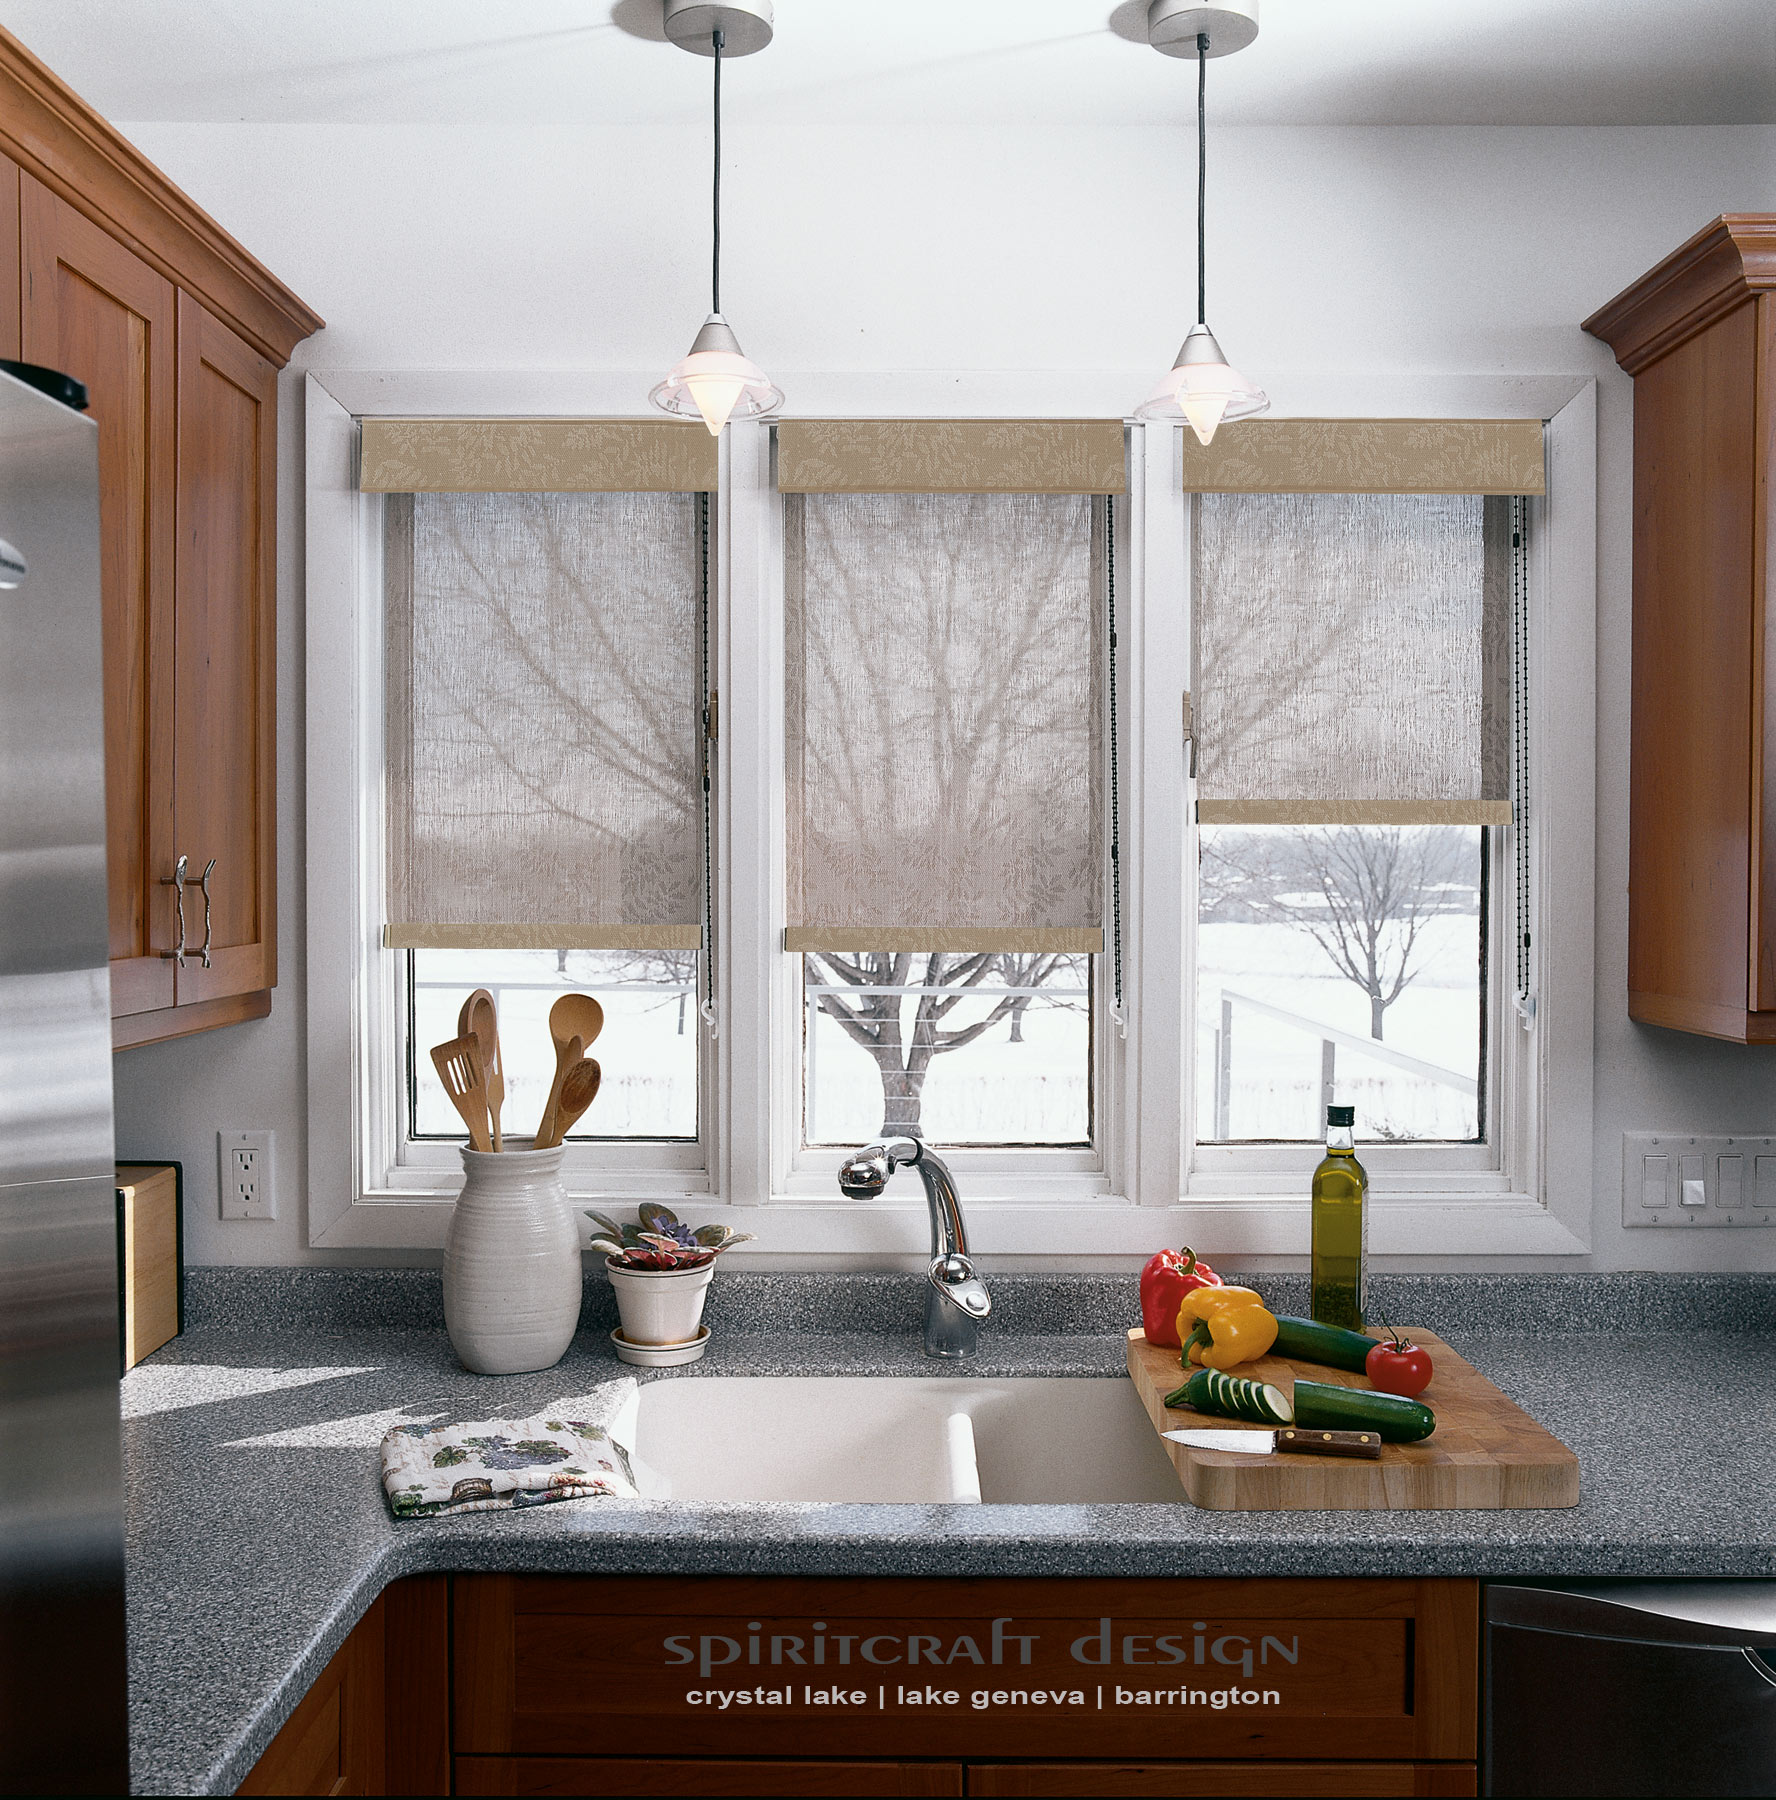 Outlook Window Fashions - Get quot; - Shades Blinds - 1629 79